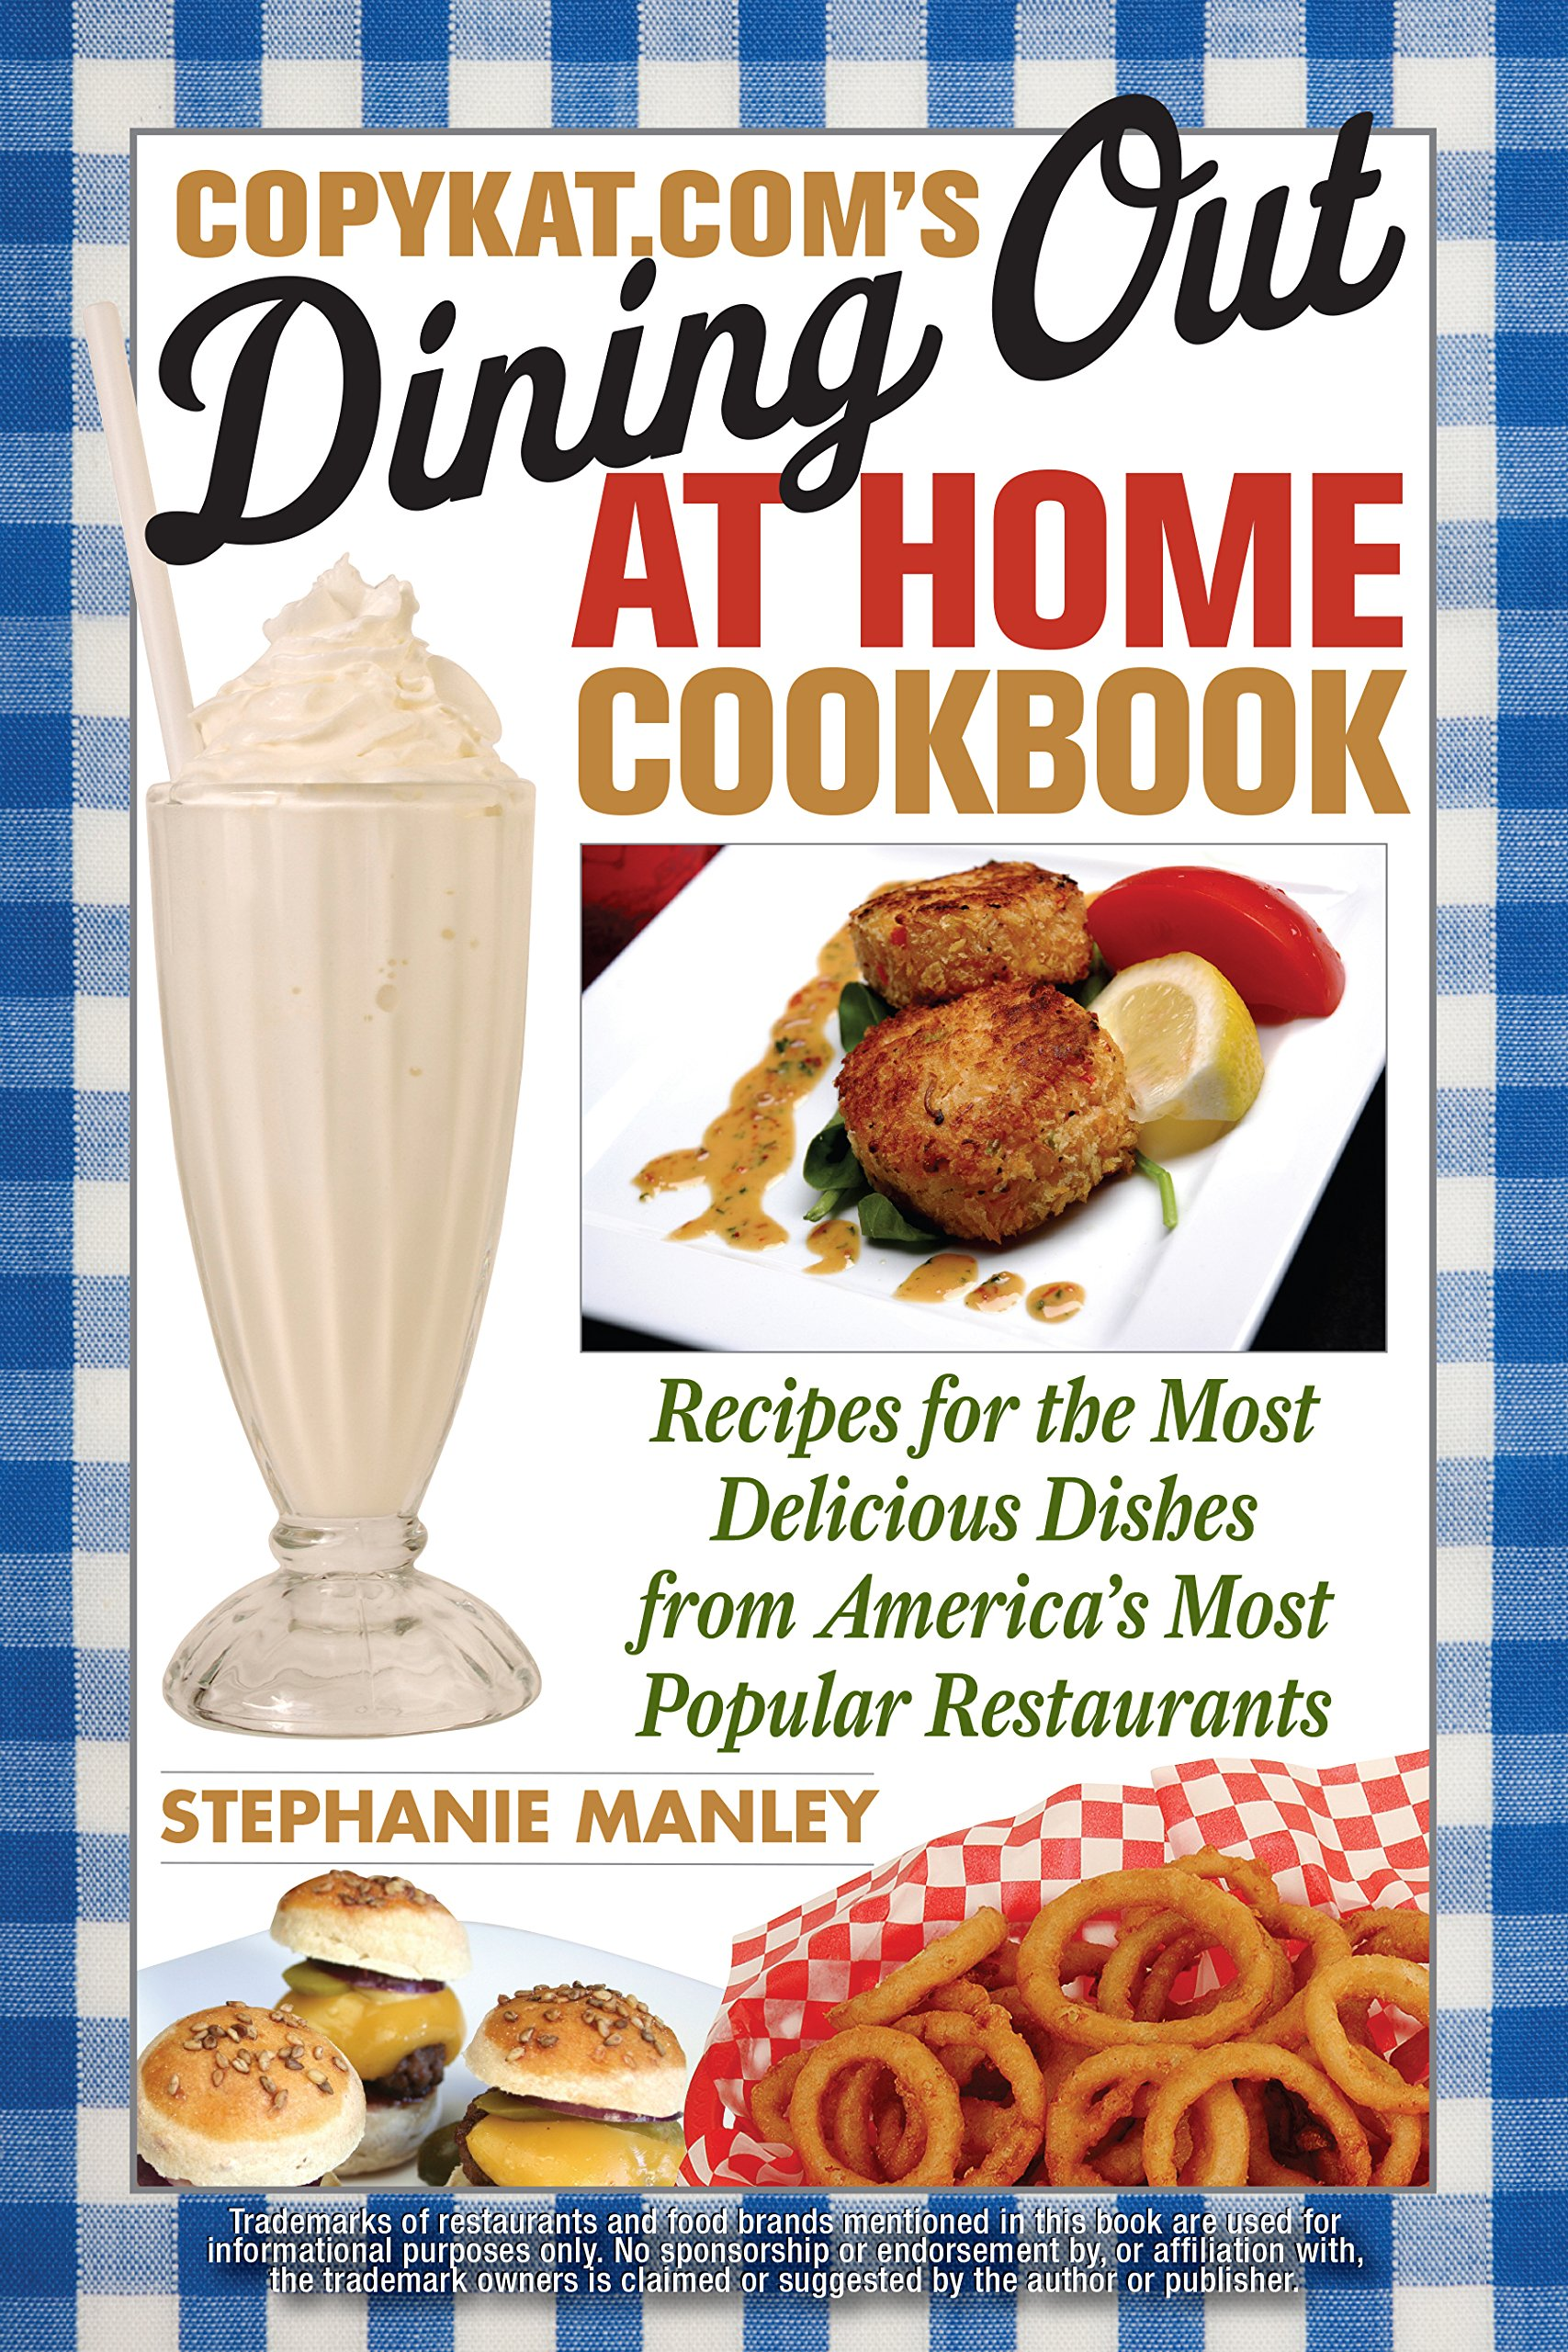 Copykats dining out at home cookbook recipes for the most copykats dining out at home cookbook recipes for the most delicious dishes from americas most popular restaurants stephanie manley 9781569757826 forumfinder Gallery